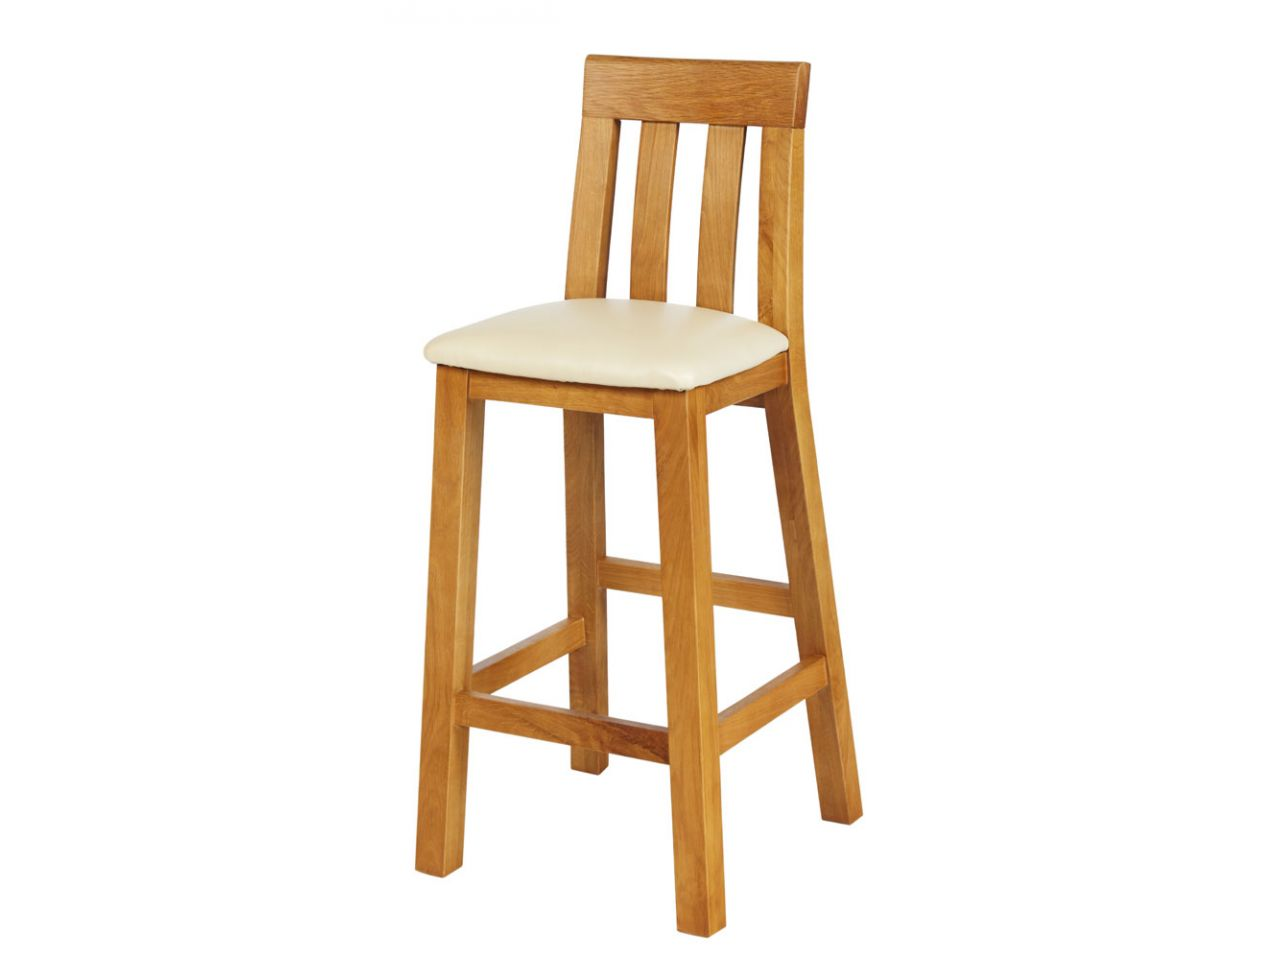 Solid Oak Billy Bar Stool With A Cream Leather Seat Pad